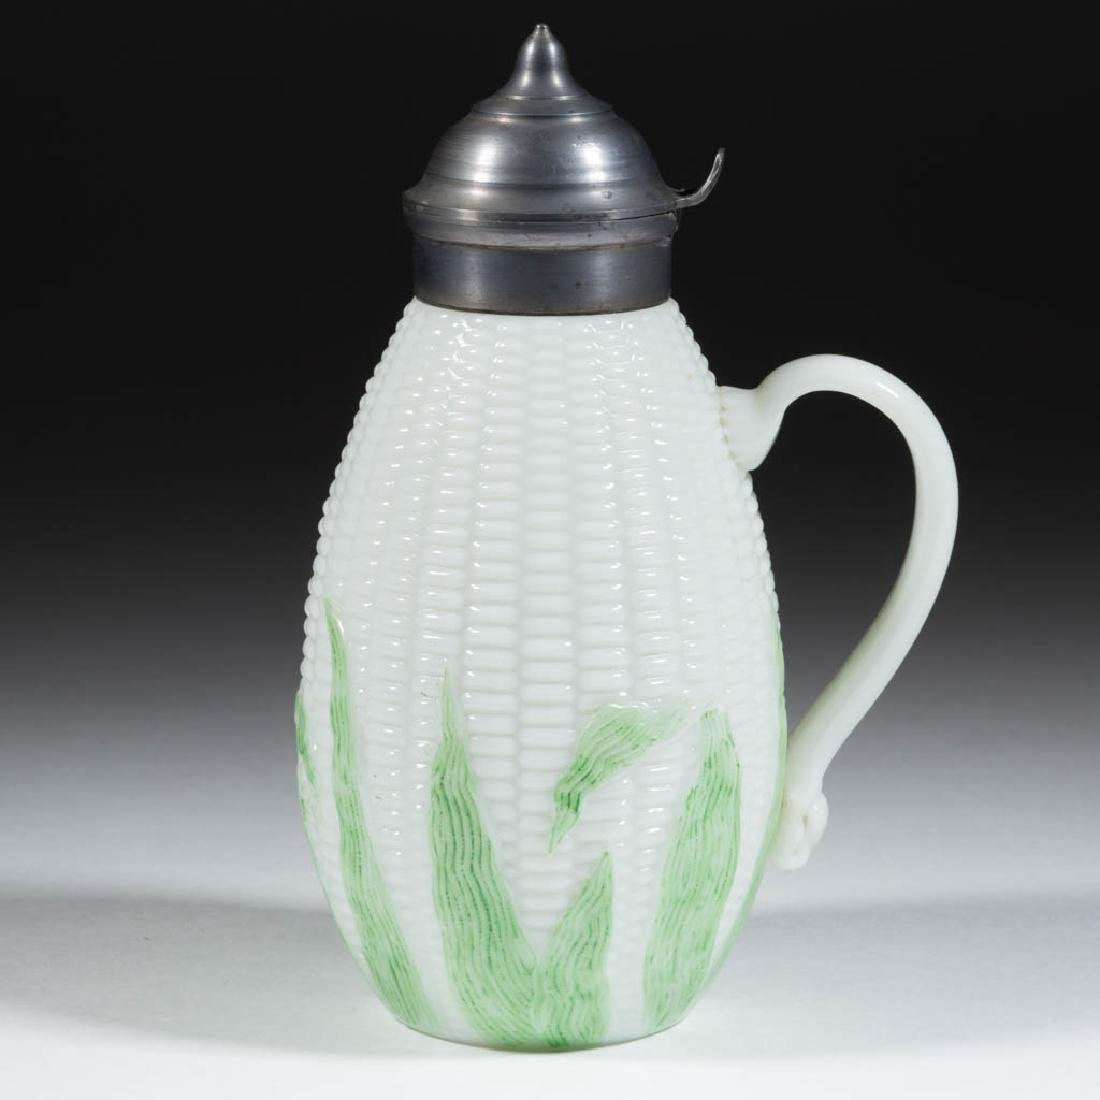 LIBBEY'S MAIZE SYRUP PITCHER